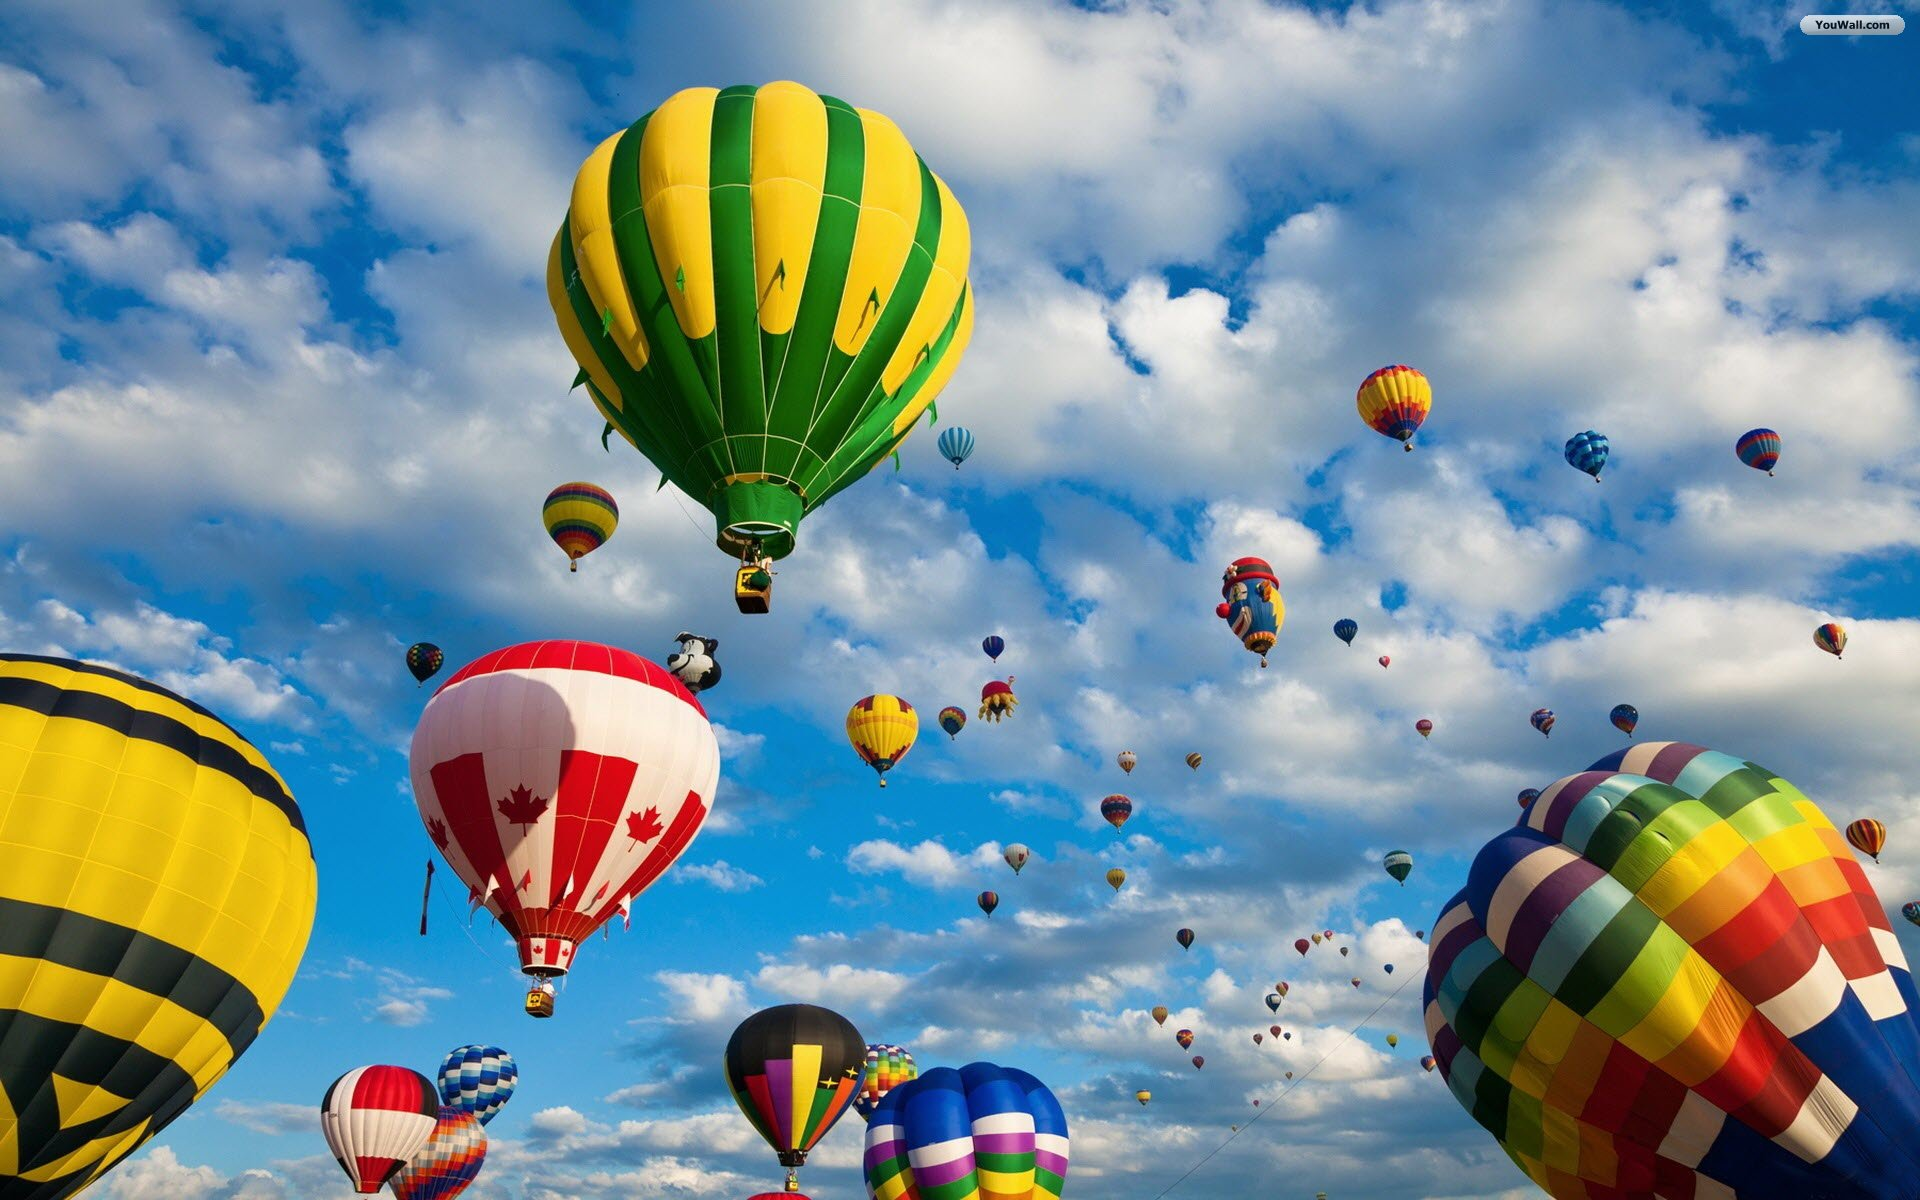 Hot Air Balloon Wallpaper 1920x1200 51412